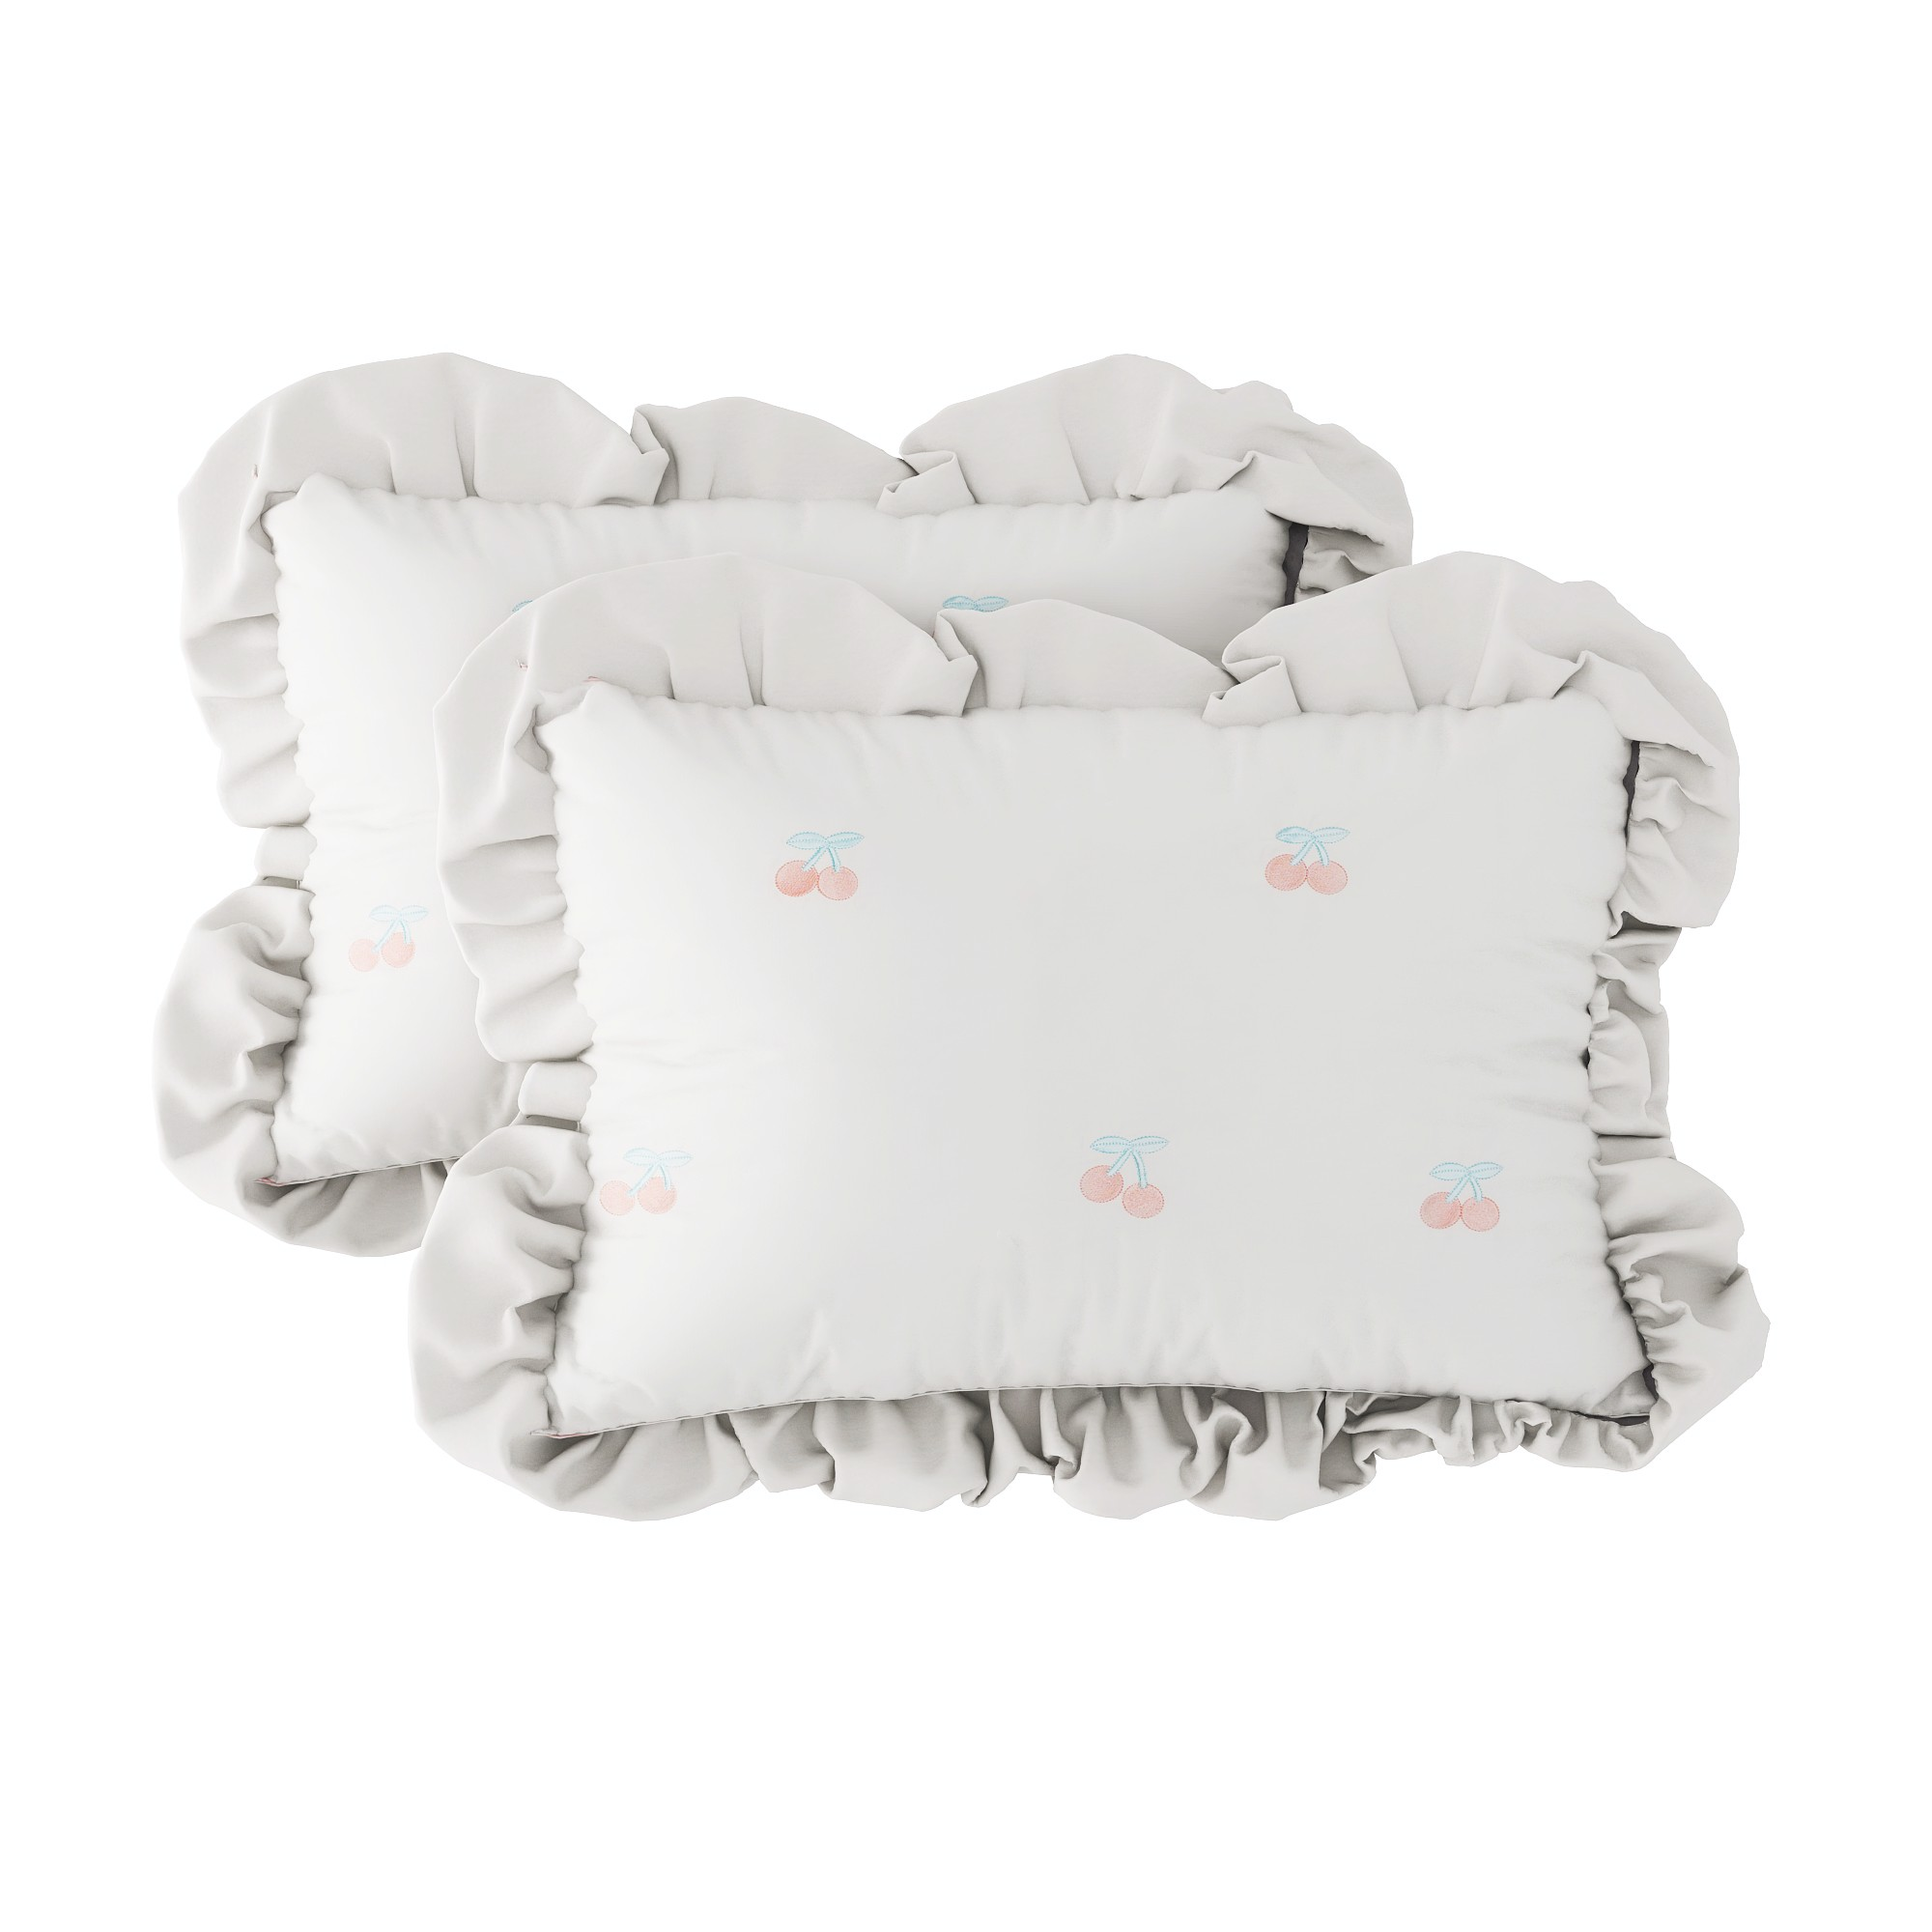 Pillow case 223 Cherries Embroidery - White